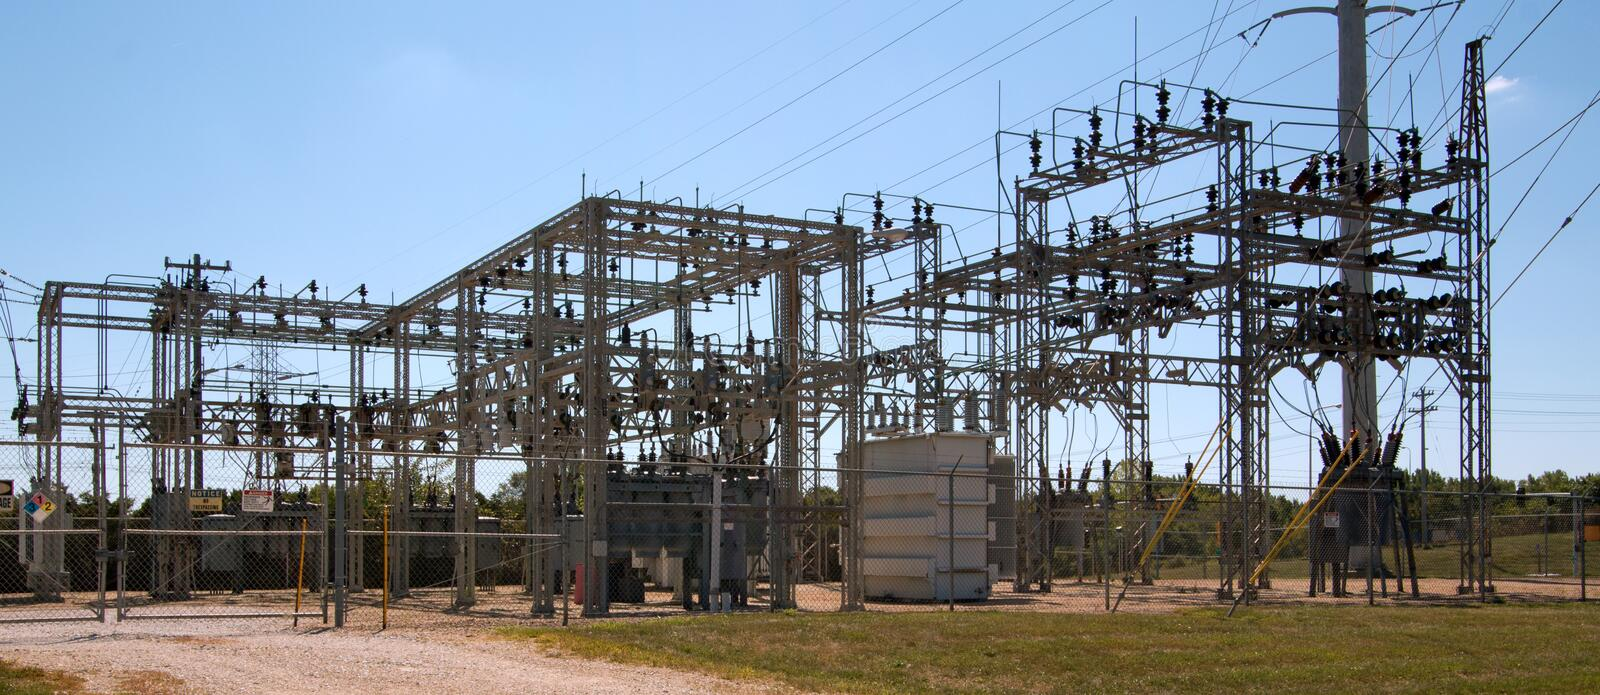 Download Electric Power Sub Station Royalty Free Stock Images - Image: 20967539